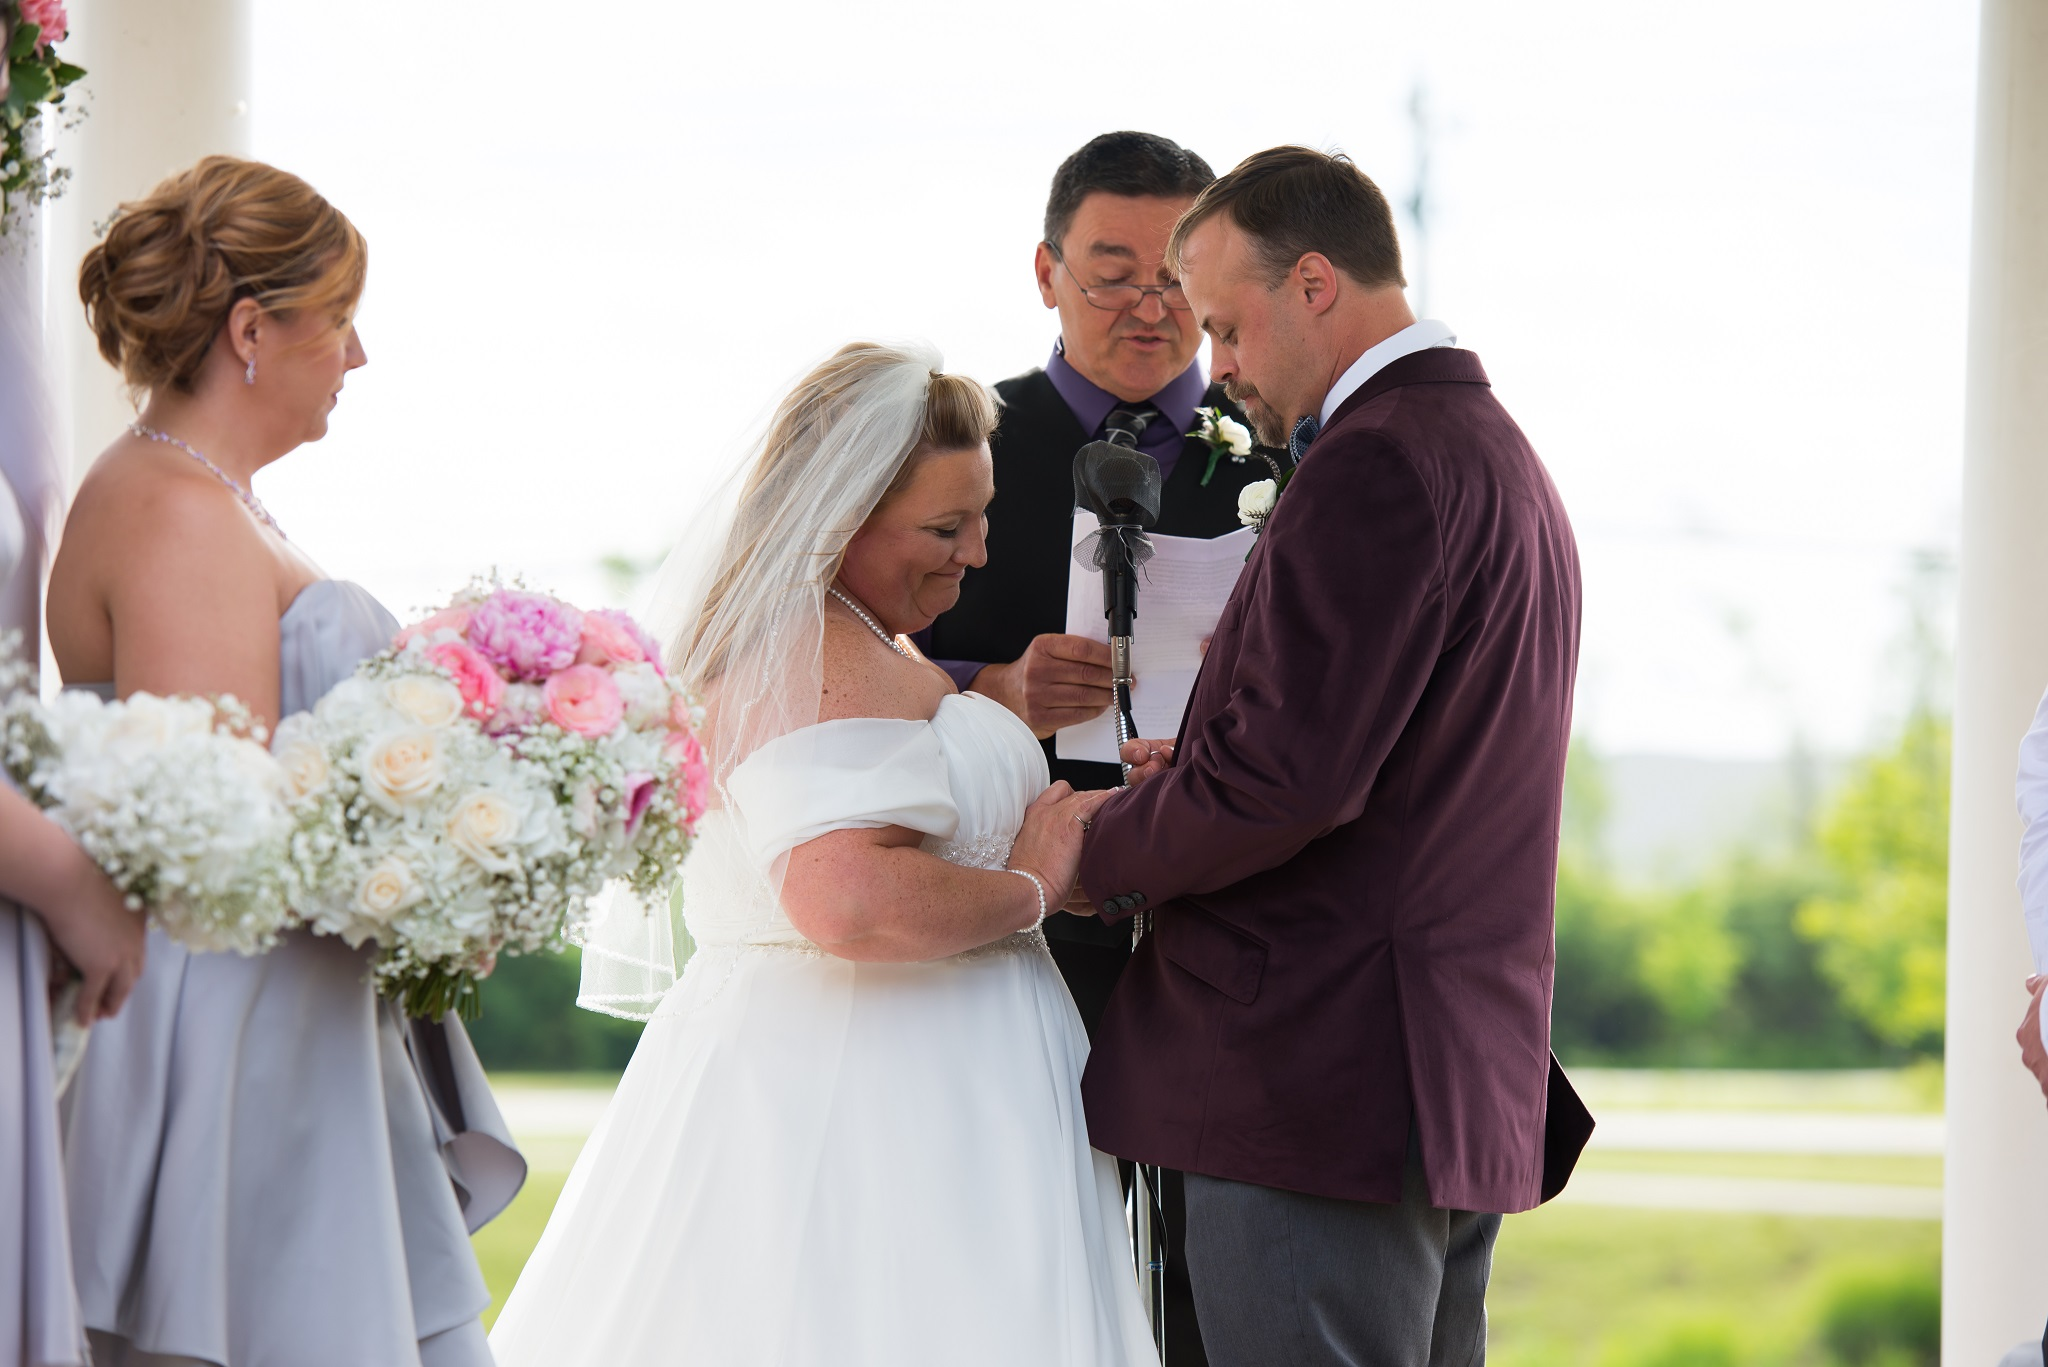 West Chester, OH Mulhauser Barn Wedding Photos: Matthew and MIchelle